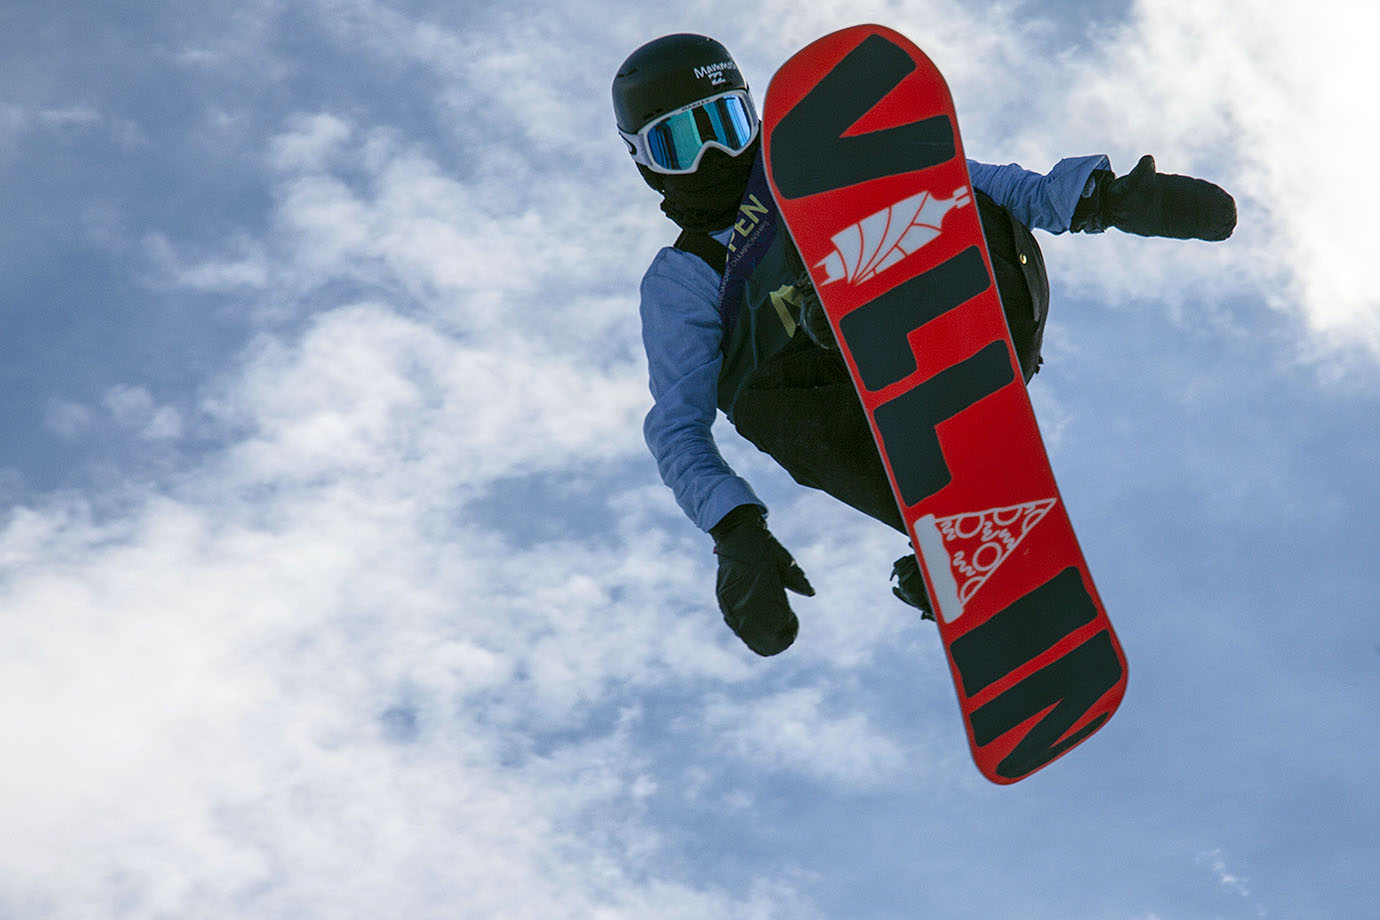 14-year-old Judd Henkes steals the show over the weekend in Vail. His win against other members of the next generation of riders in the Junior Jam qualified Henkes for the semifinals of both main events. He finished 27th out of 31 riders in Slopestyle but finished fifth in the Superpipe final.